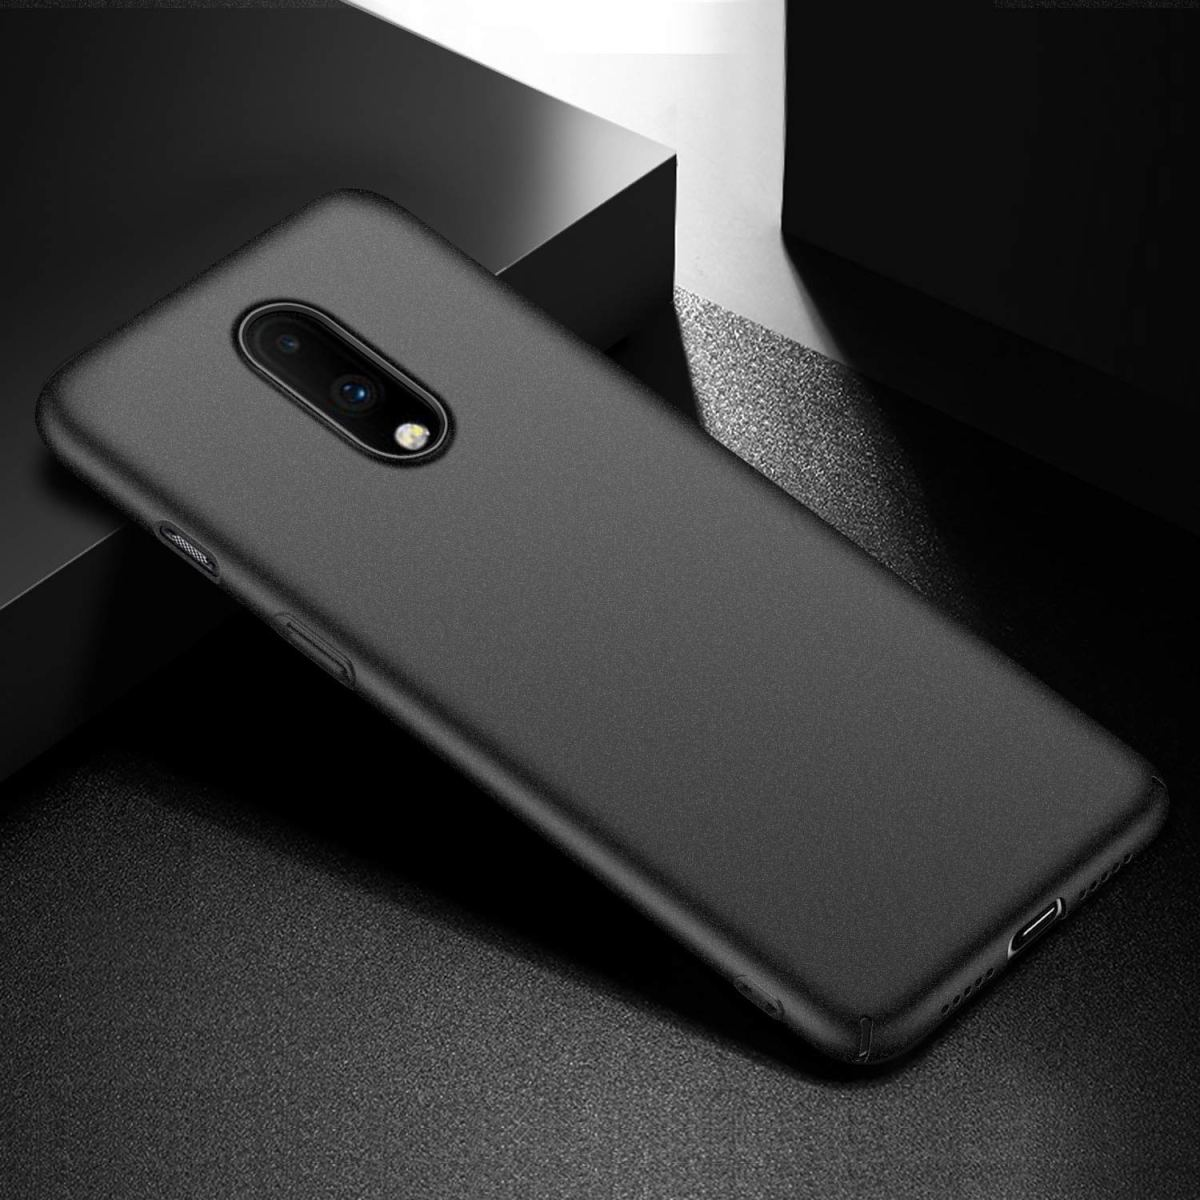 Banzn OnePlus 7 Cases and Covers